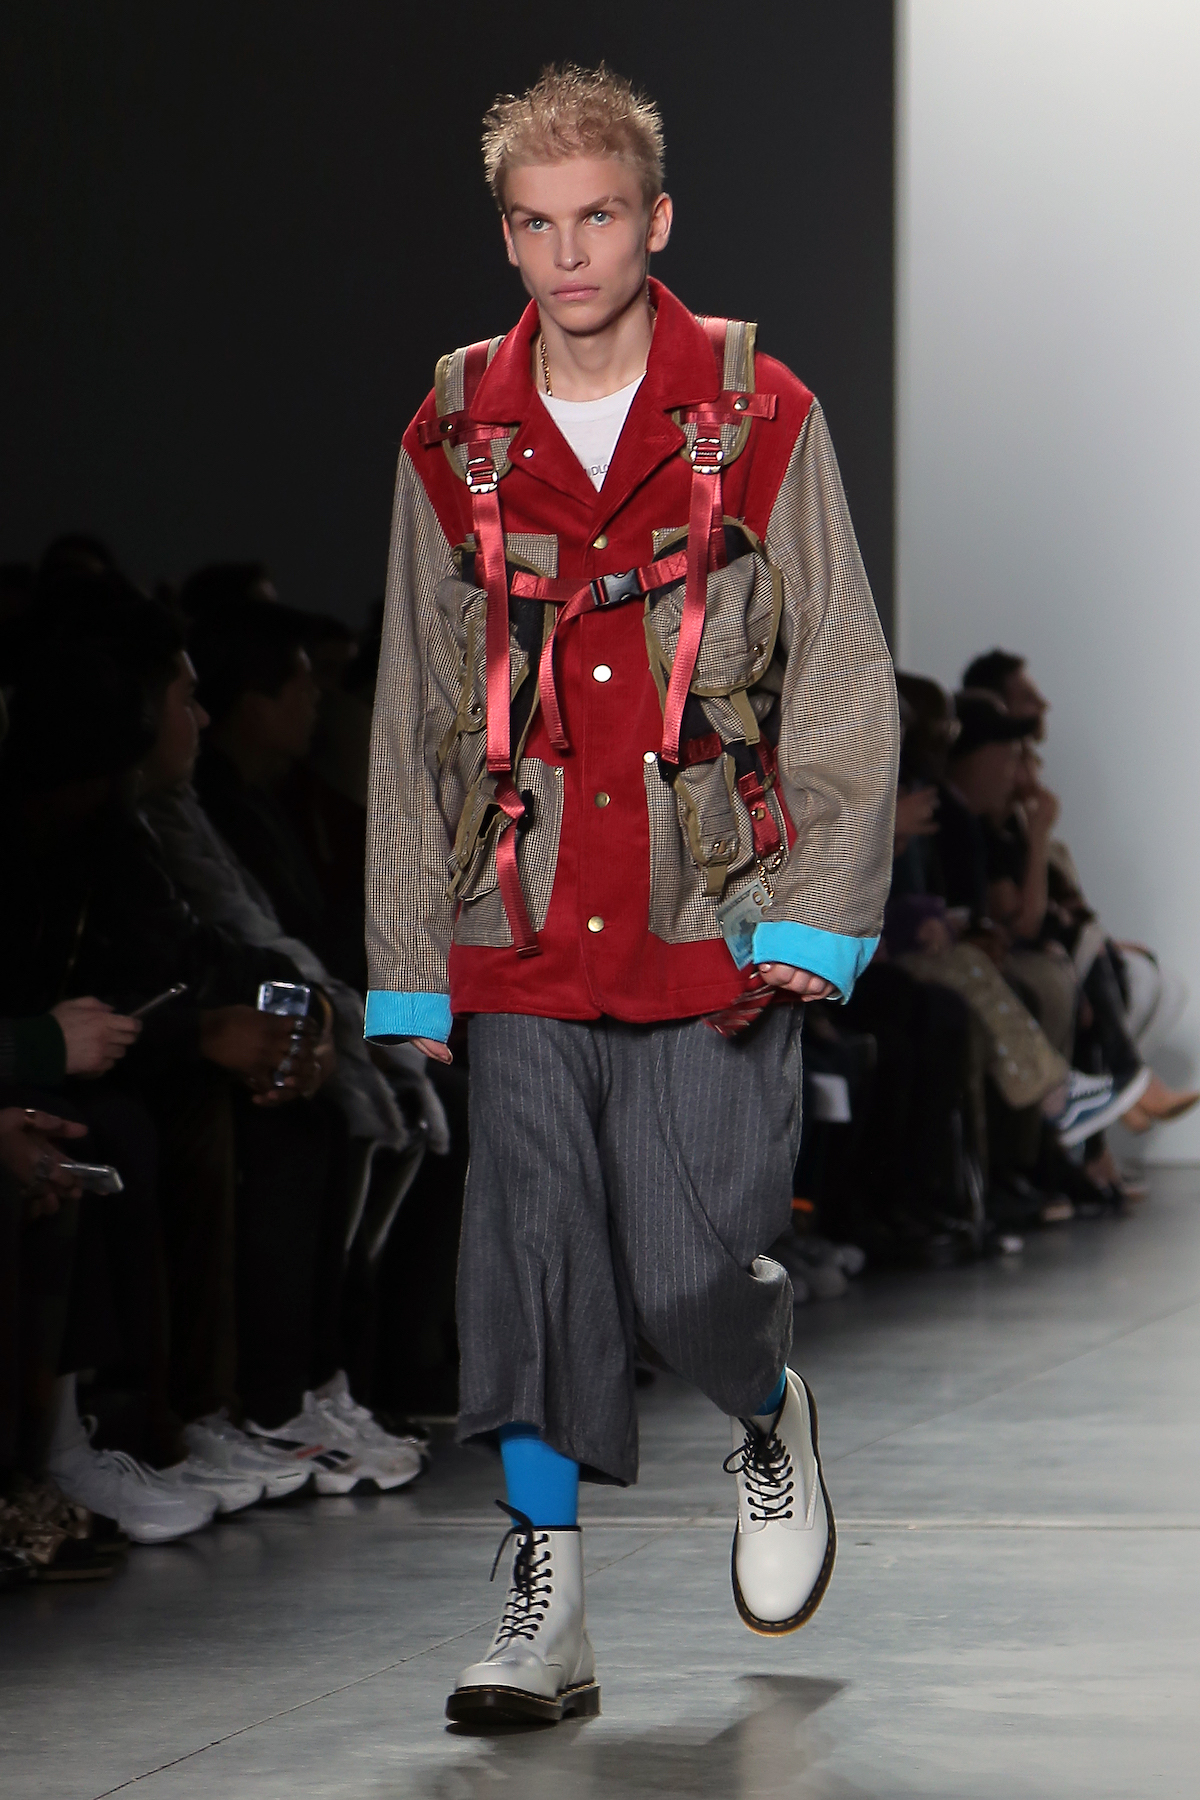 Men's Fall Fashion to Look Out For